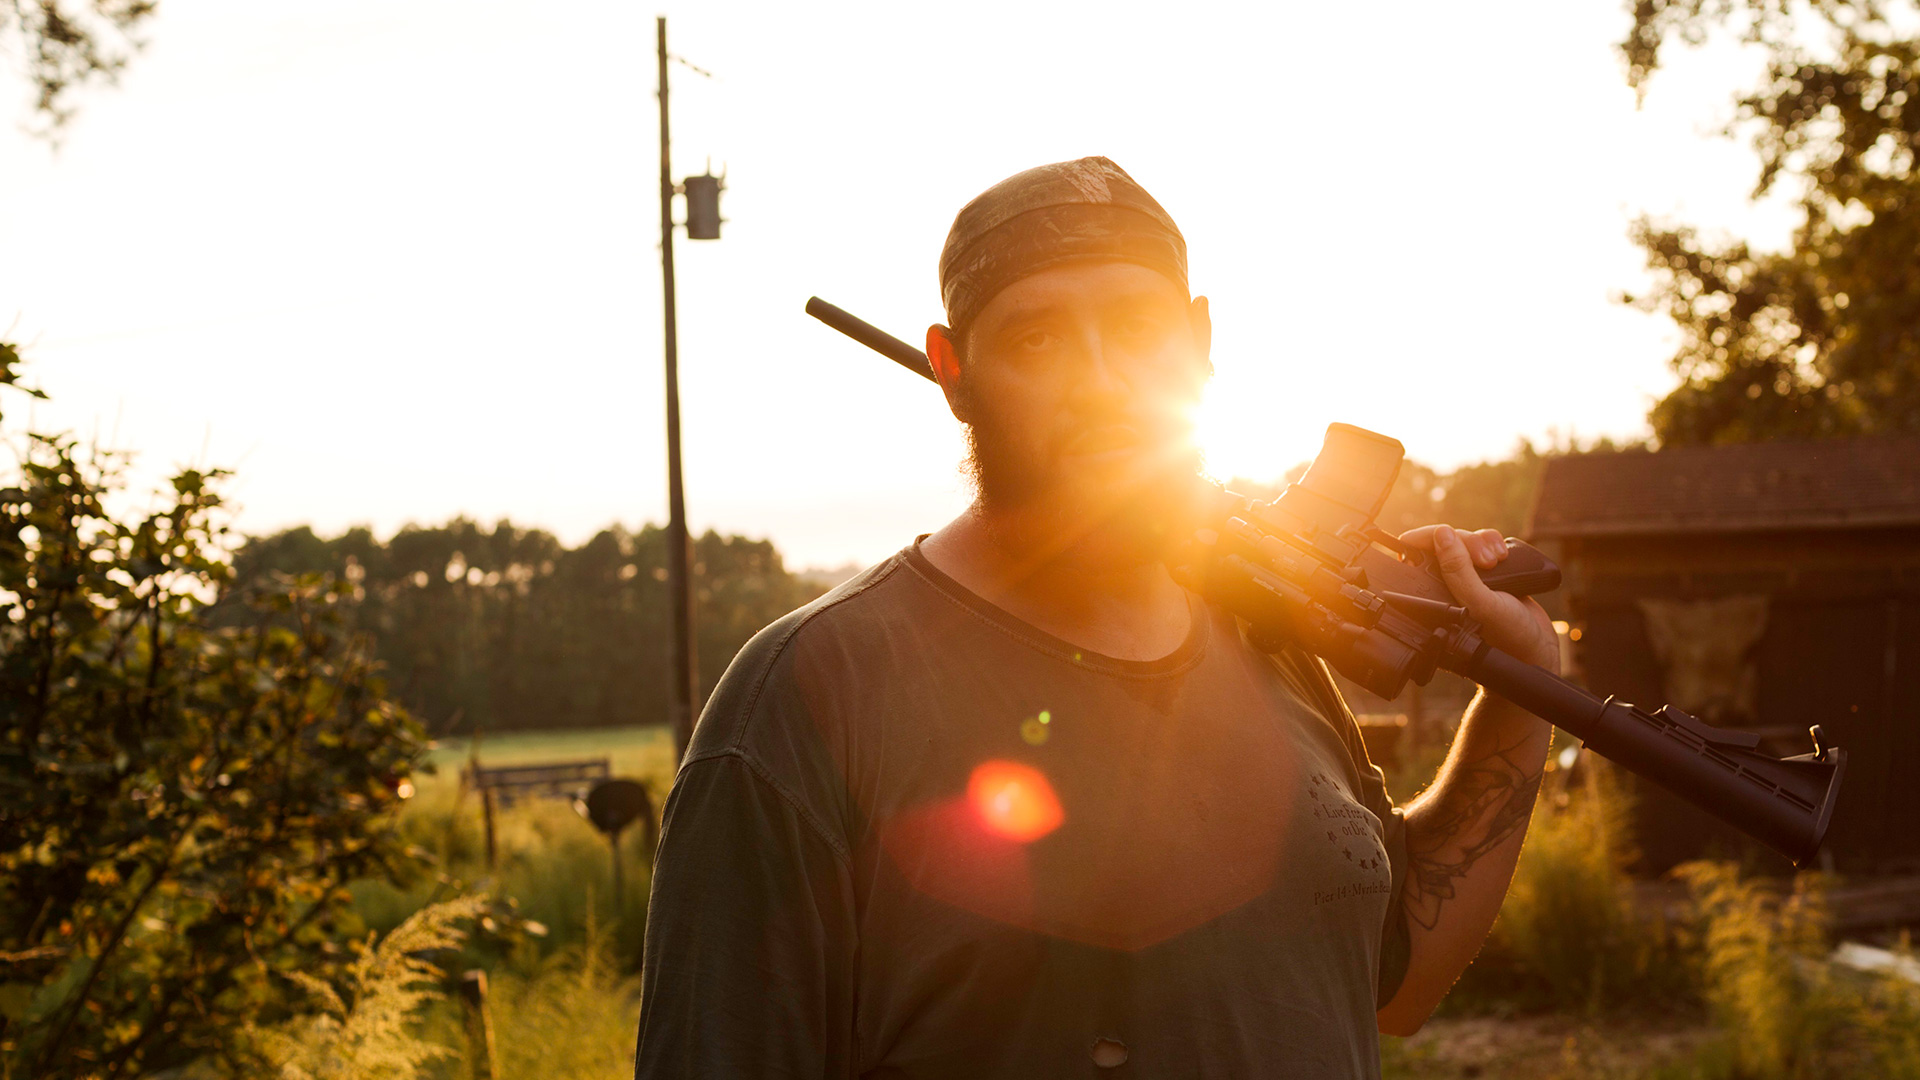 U.S. Army veteran Alex Sutton after shooting a rifle on his farm in rural Moore County, North Carolina, October 2, 2014.